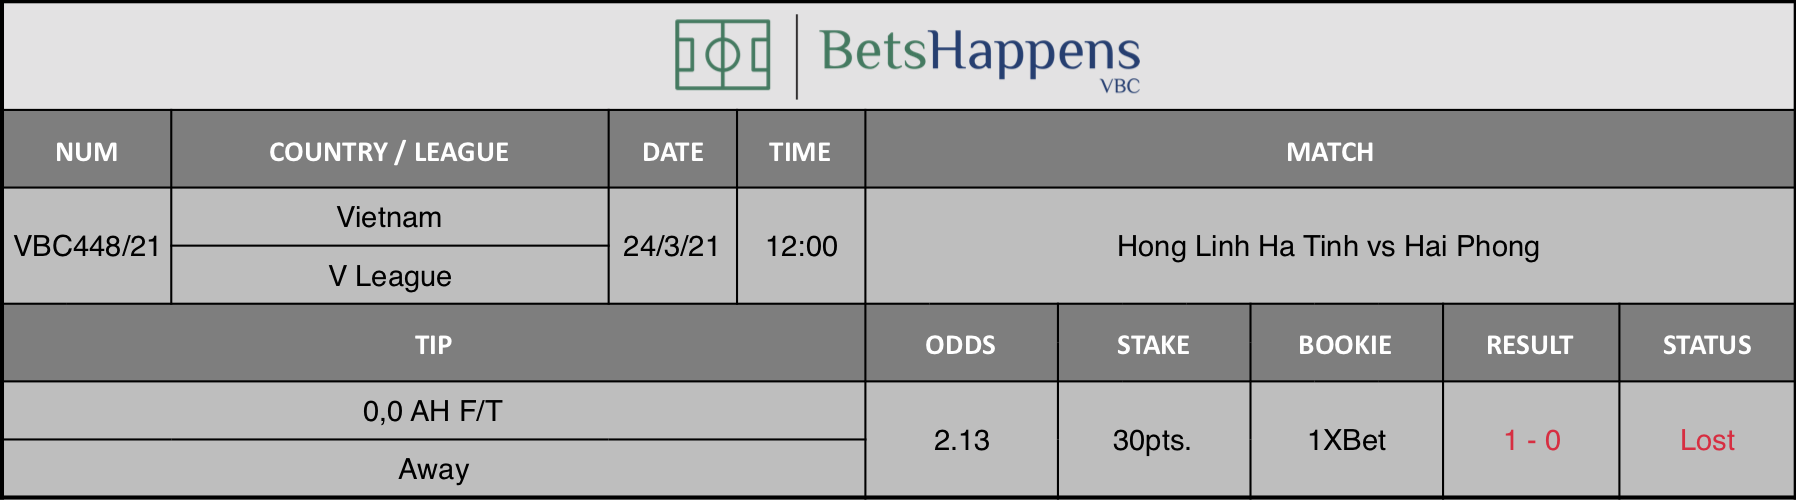 Results of our tip for the Hong Linh Ha Tinh vs Hai Phong match where 0,0 AH F/T  Away is recommended.